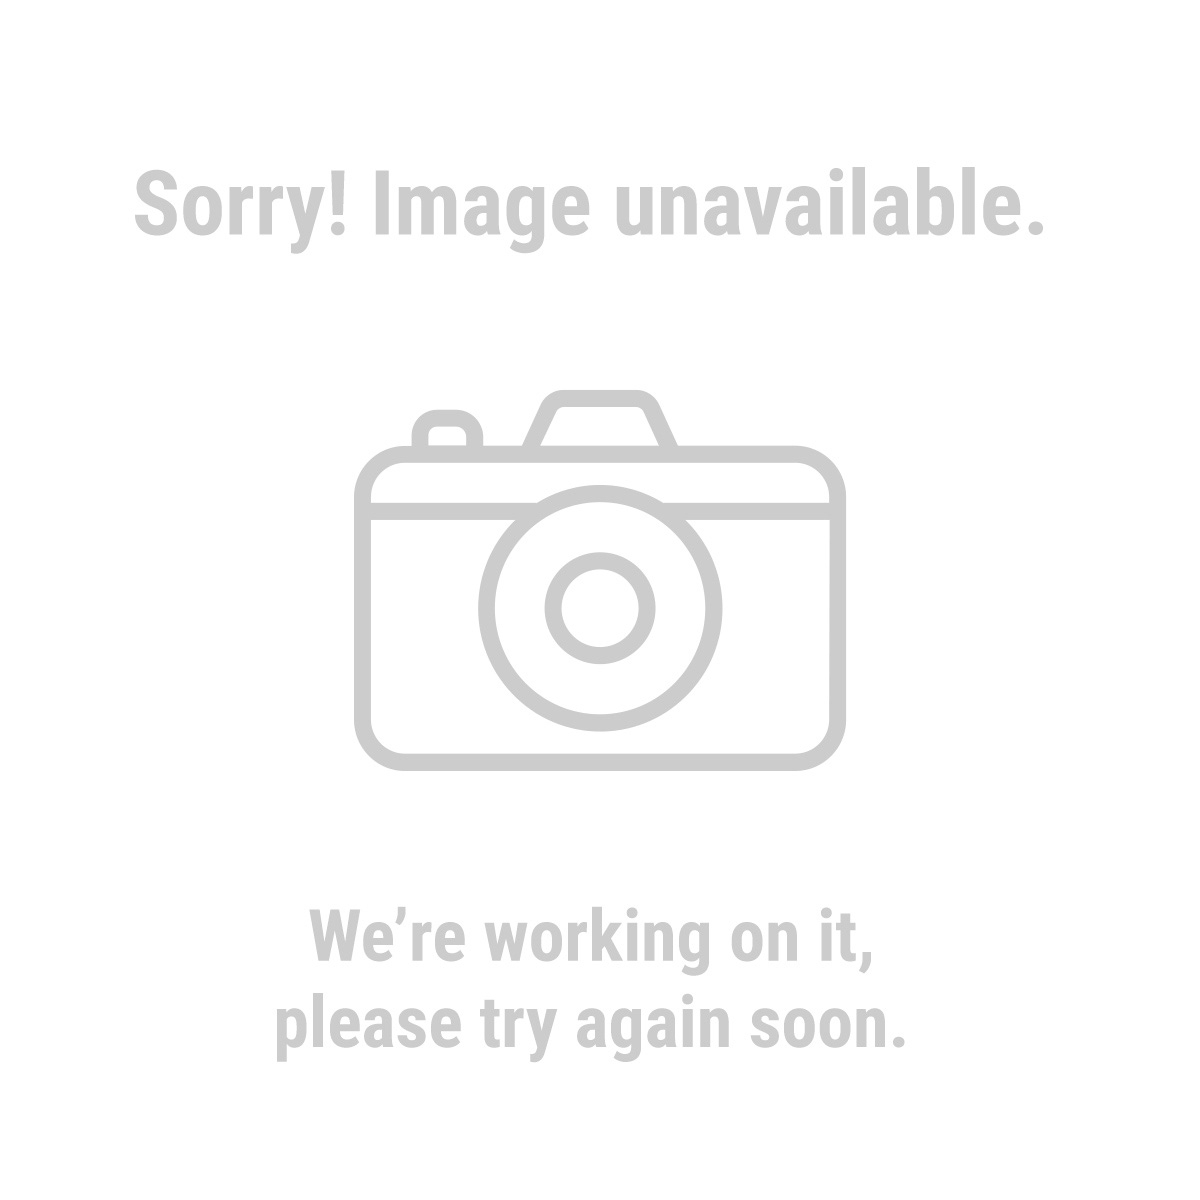 Central-Machinery 31810 13 Gallon Industrial Portable Dust Collector